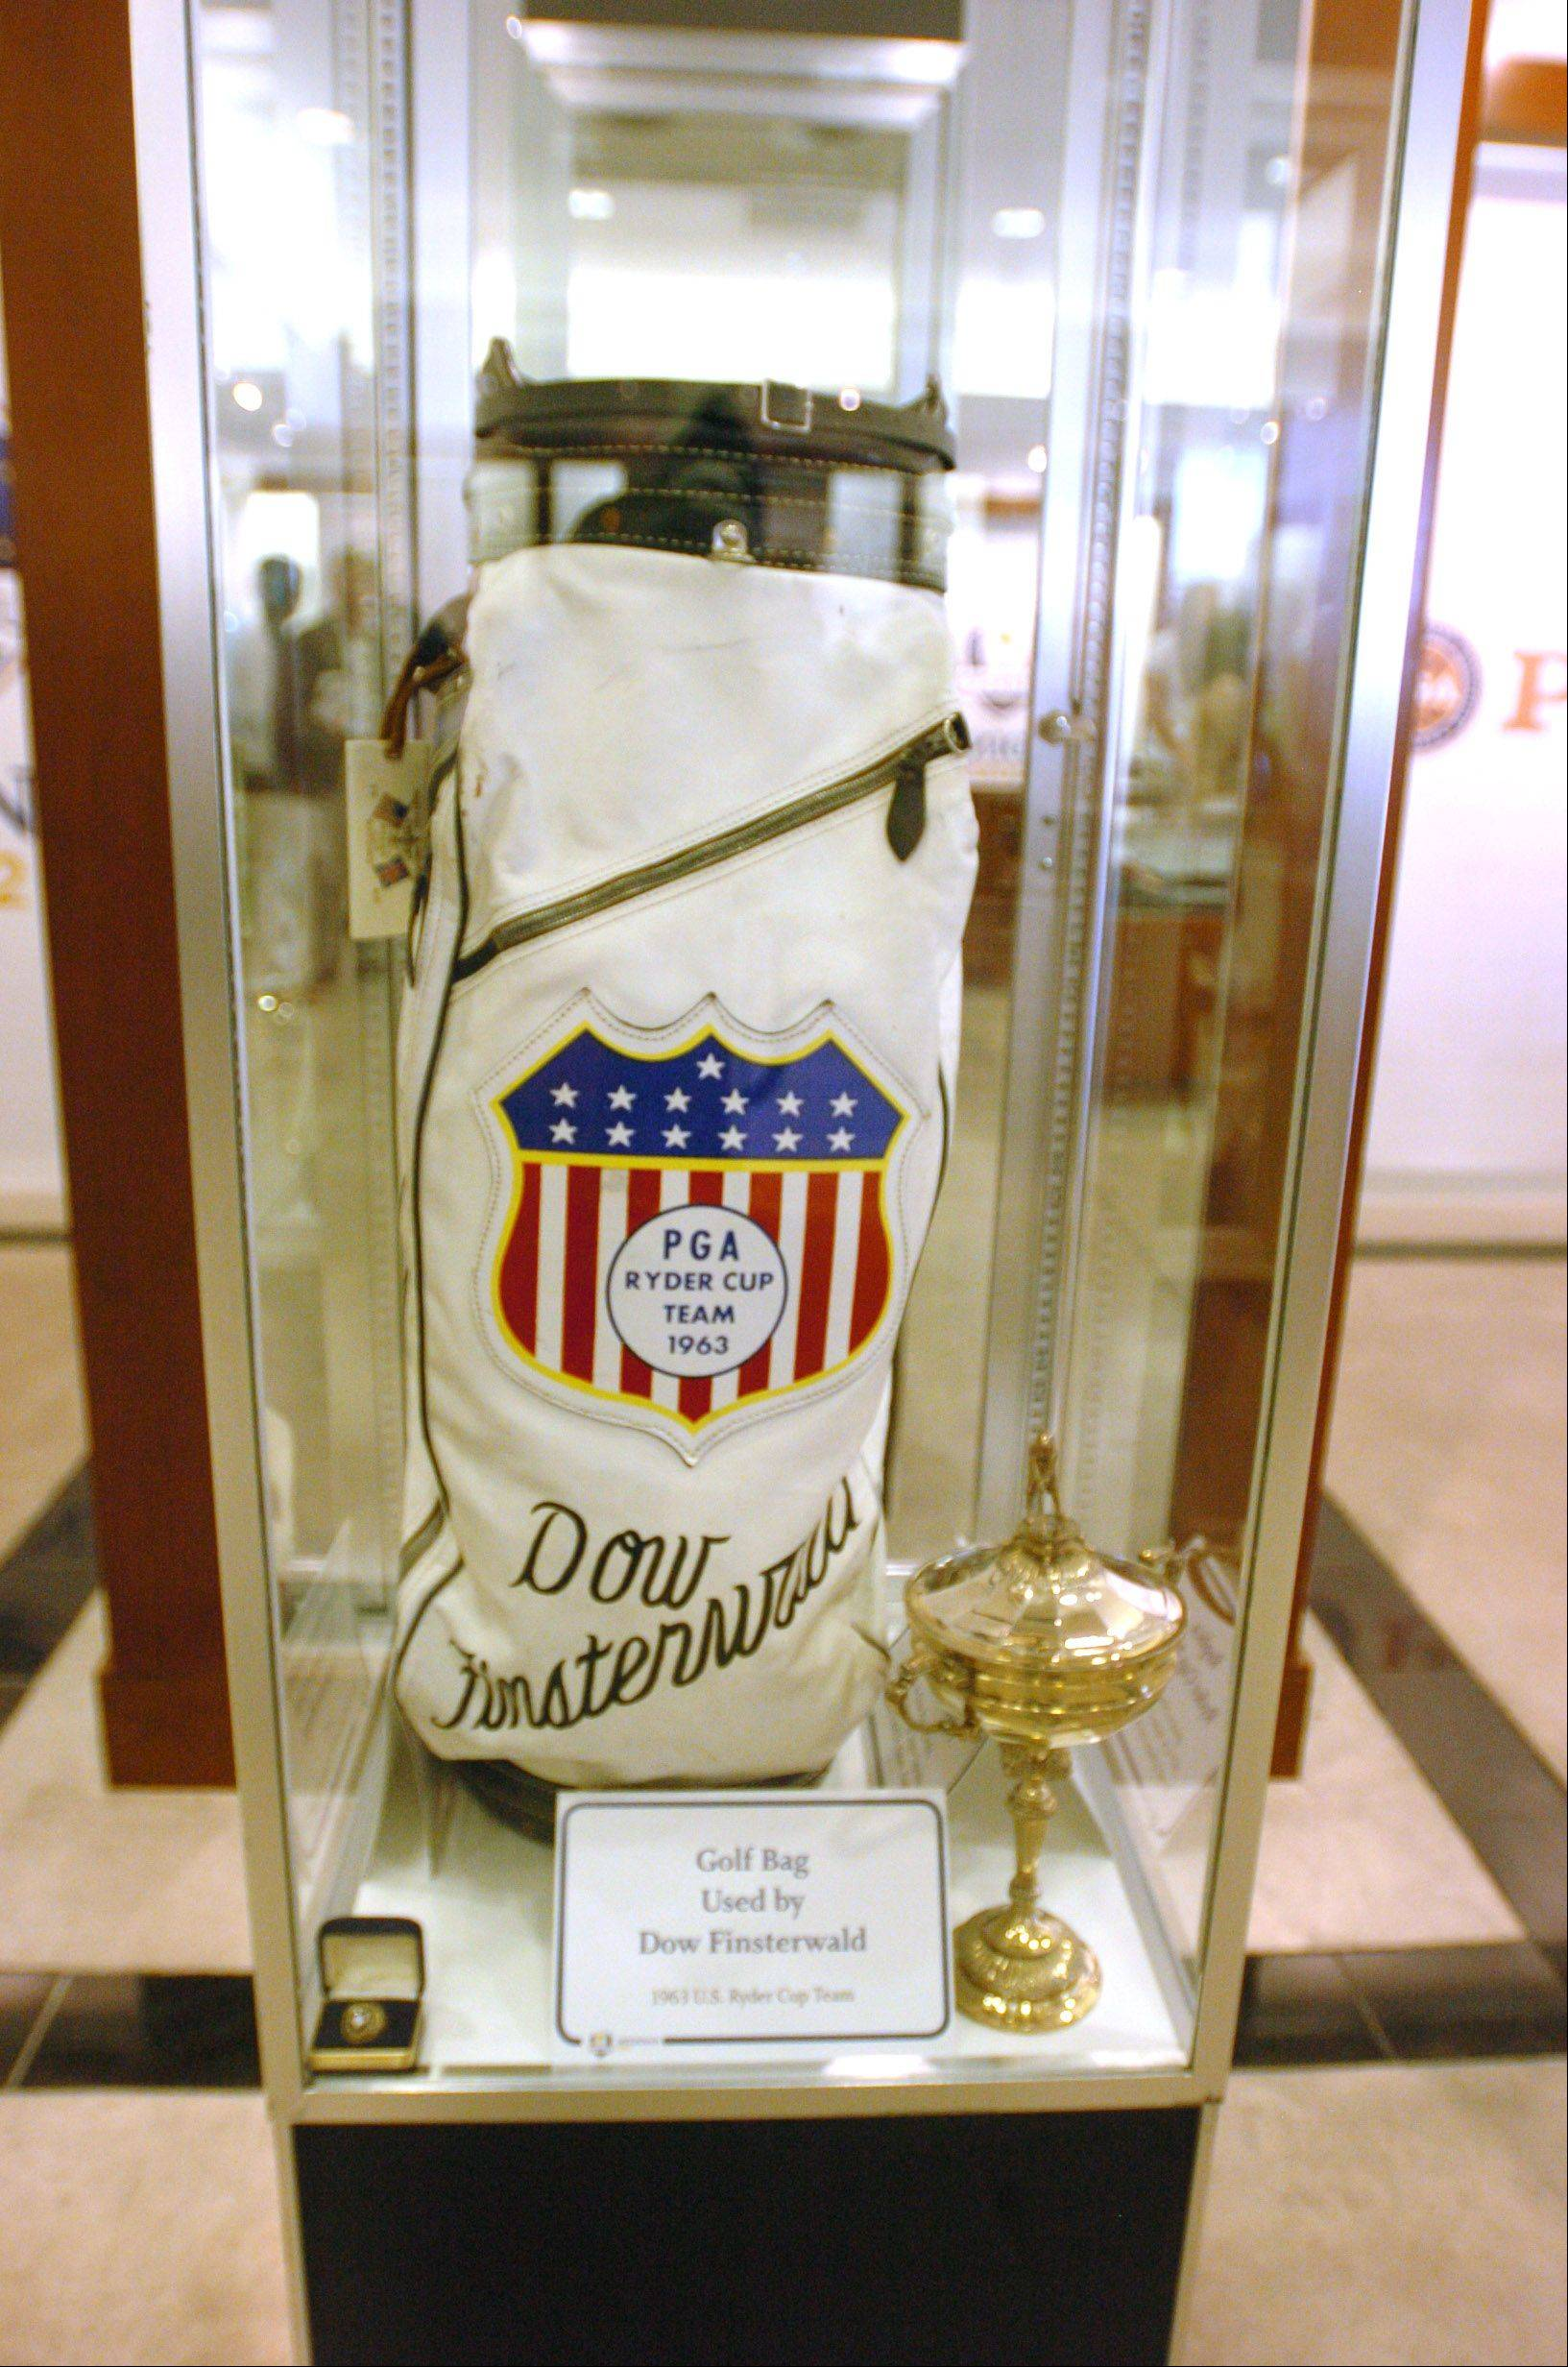 The golf bag used by Dow Finsterwald is one of the items on display at a Ryder Cup exhibit now at Oakbrook Center. More than 60 items are on display through Sept. 30, including items from Jack Nicklaus and Arnold Palmer.